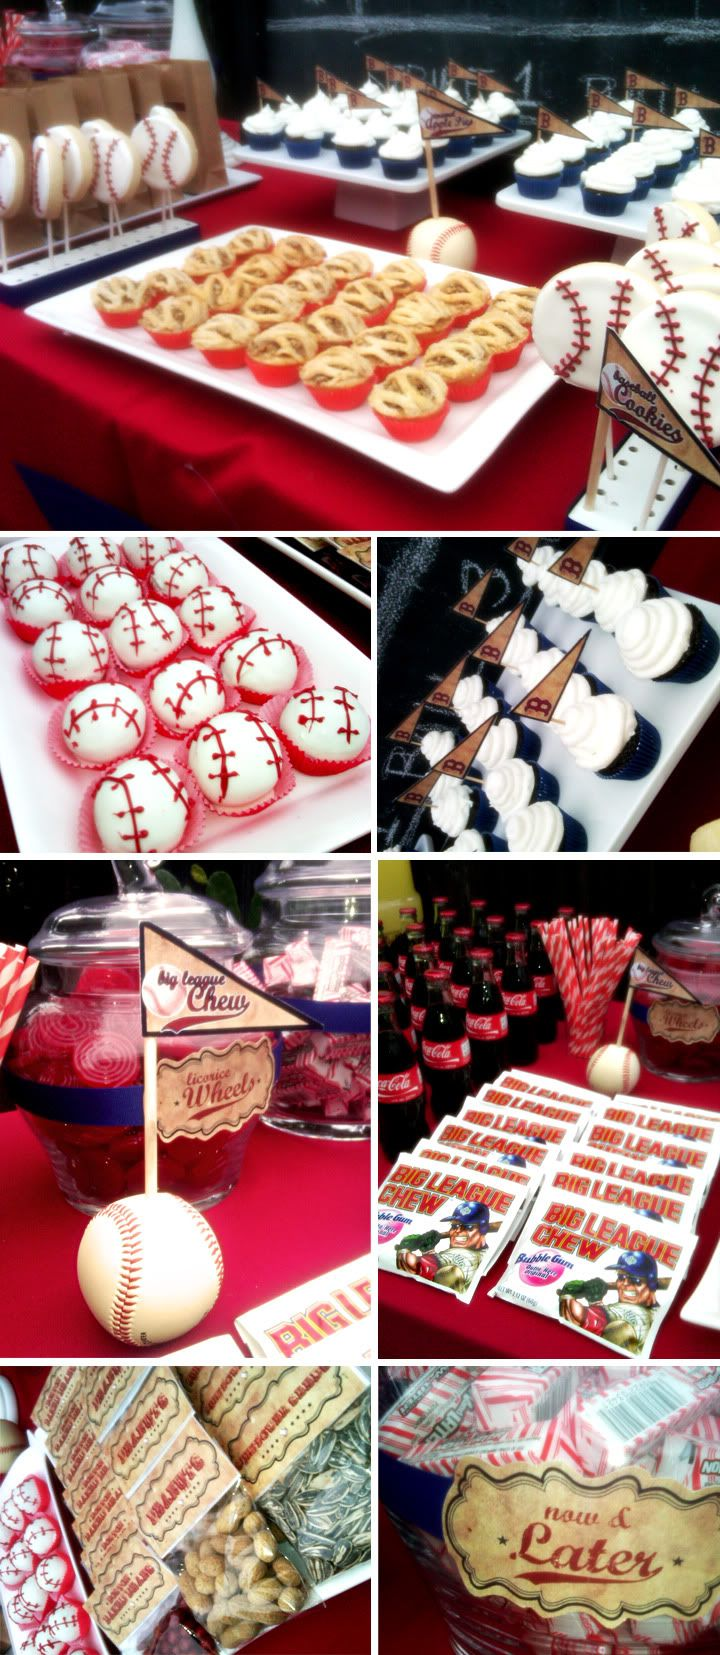 OH my~ Love this ball themed party~ The Big League Chew would be such a hit!